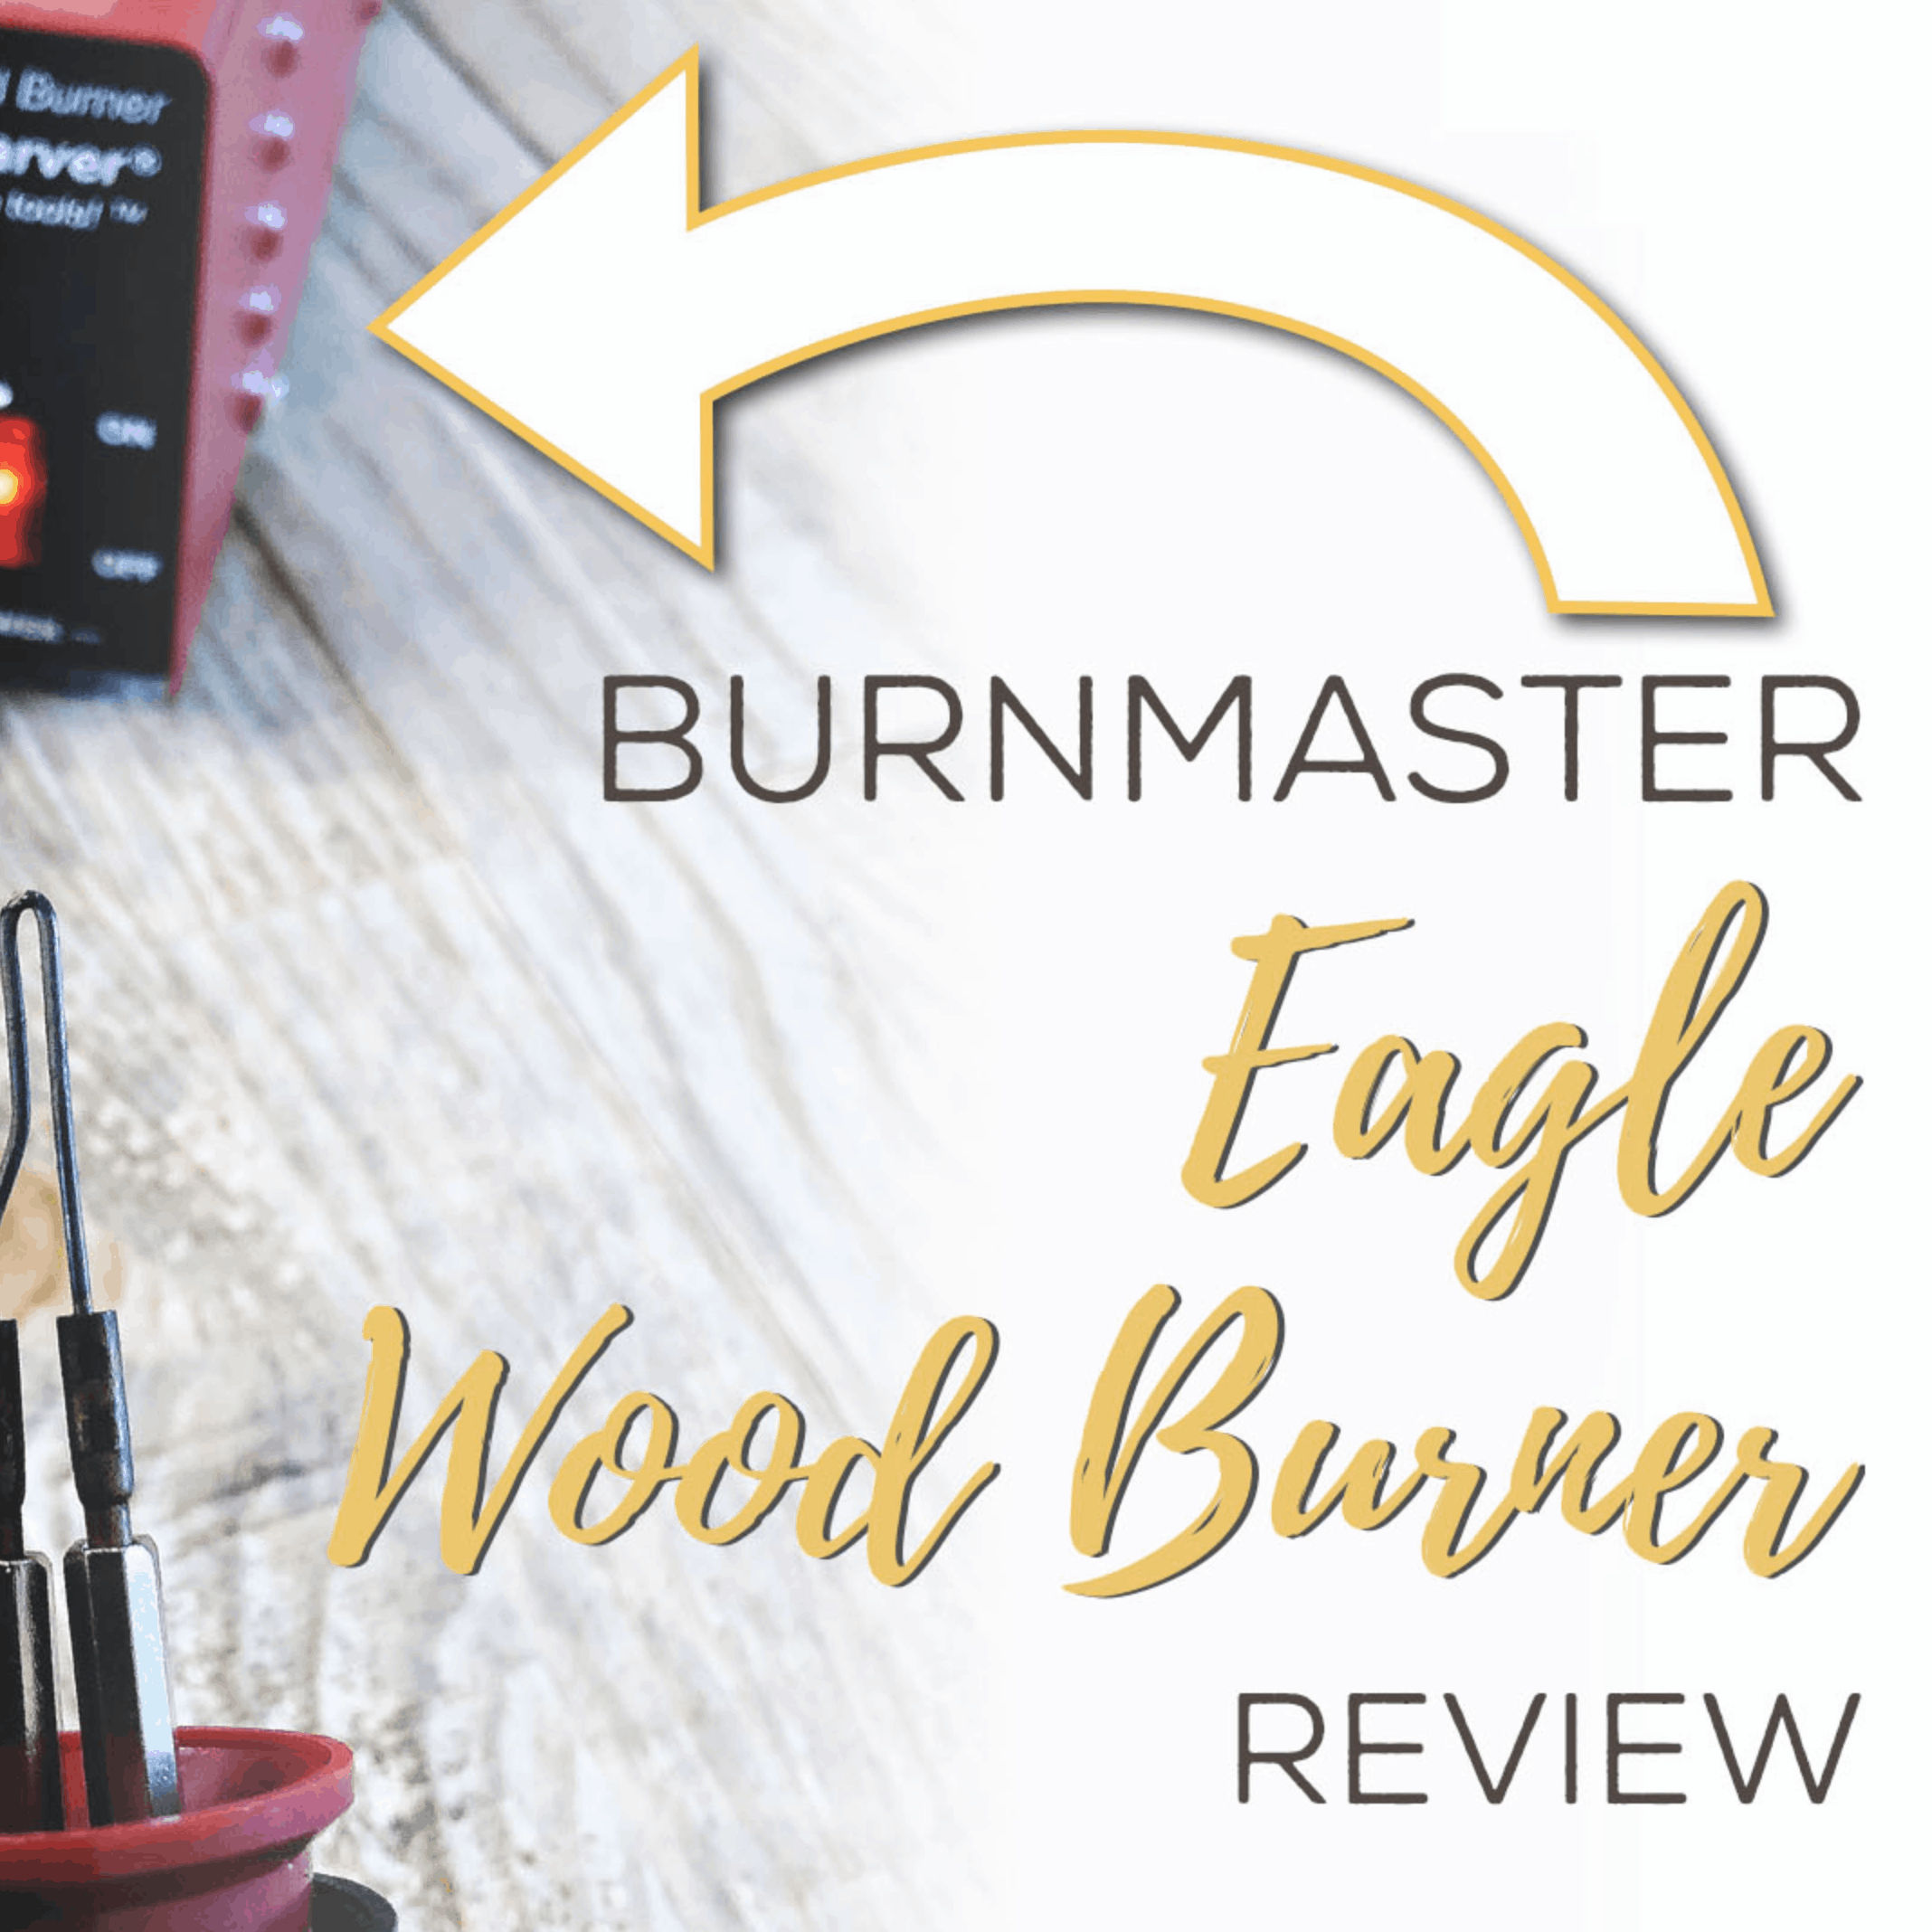 Burnmaster Eagle Pro Review